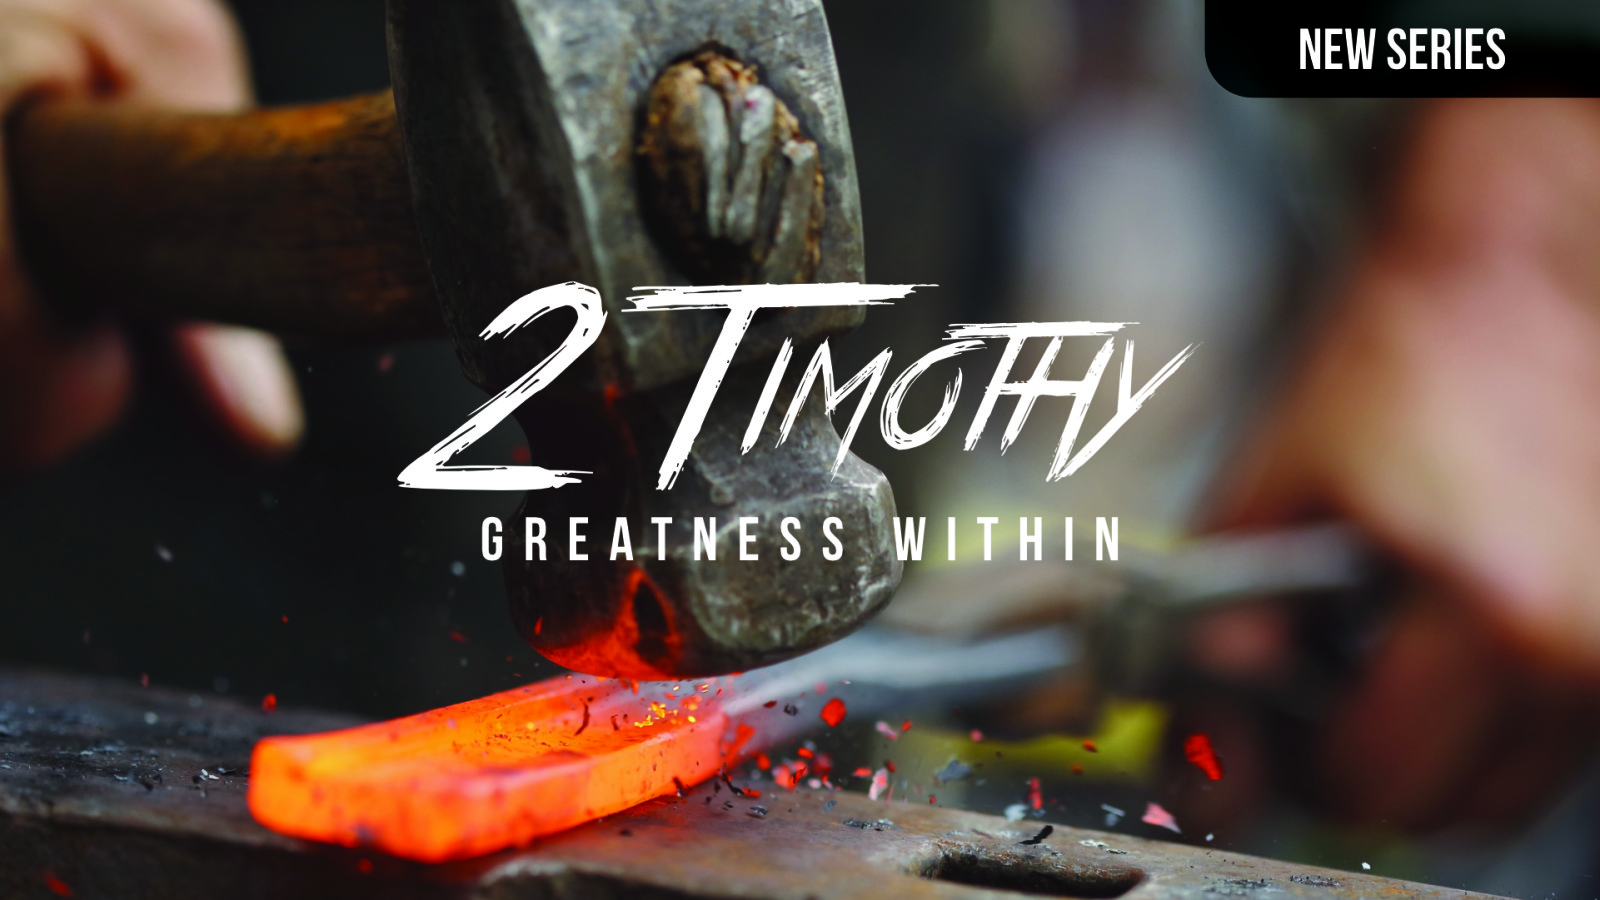 2 Timothy (New Series)